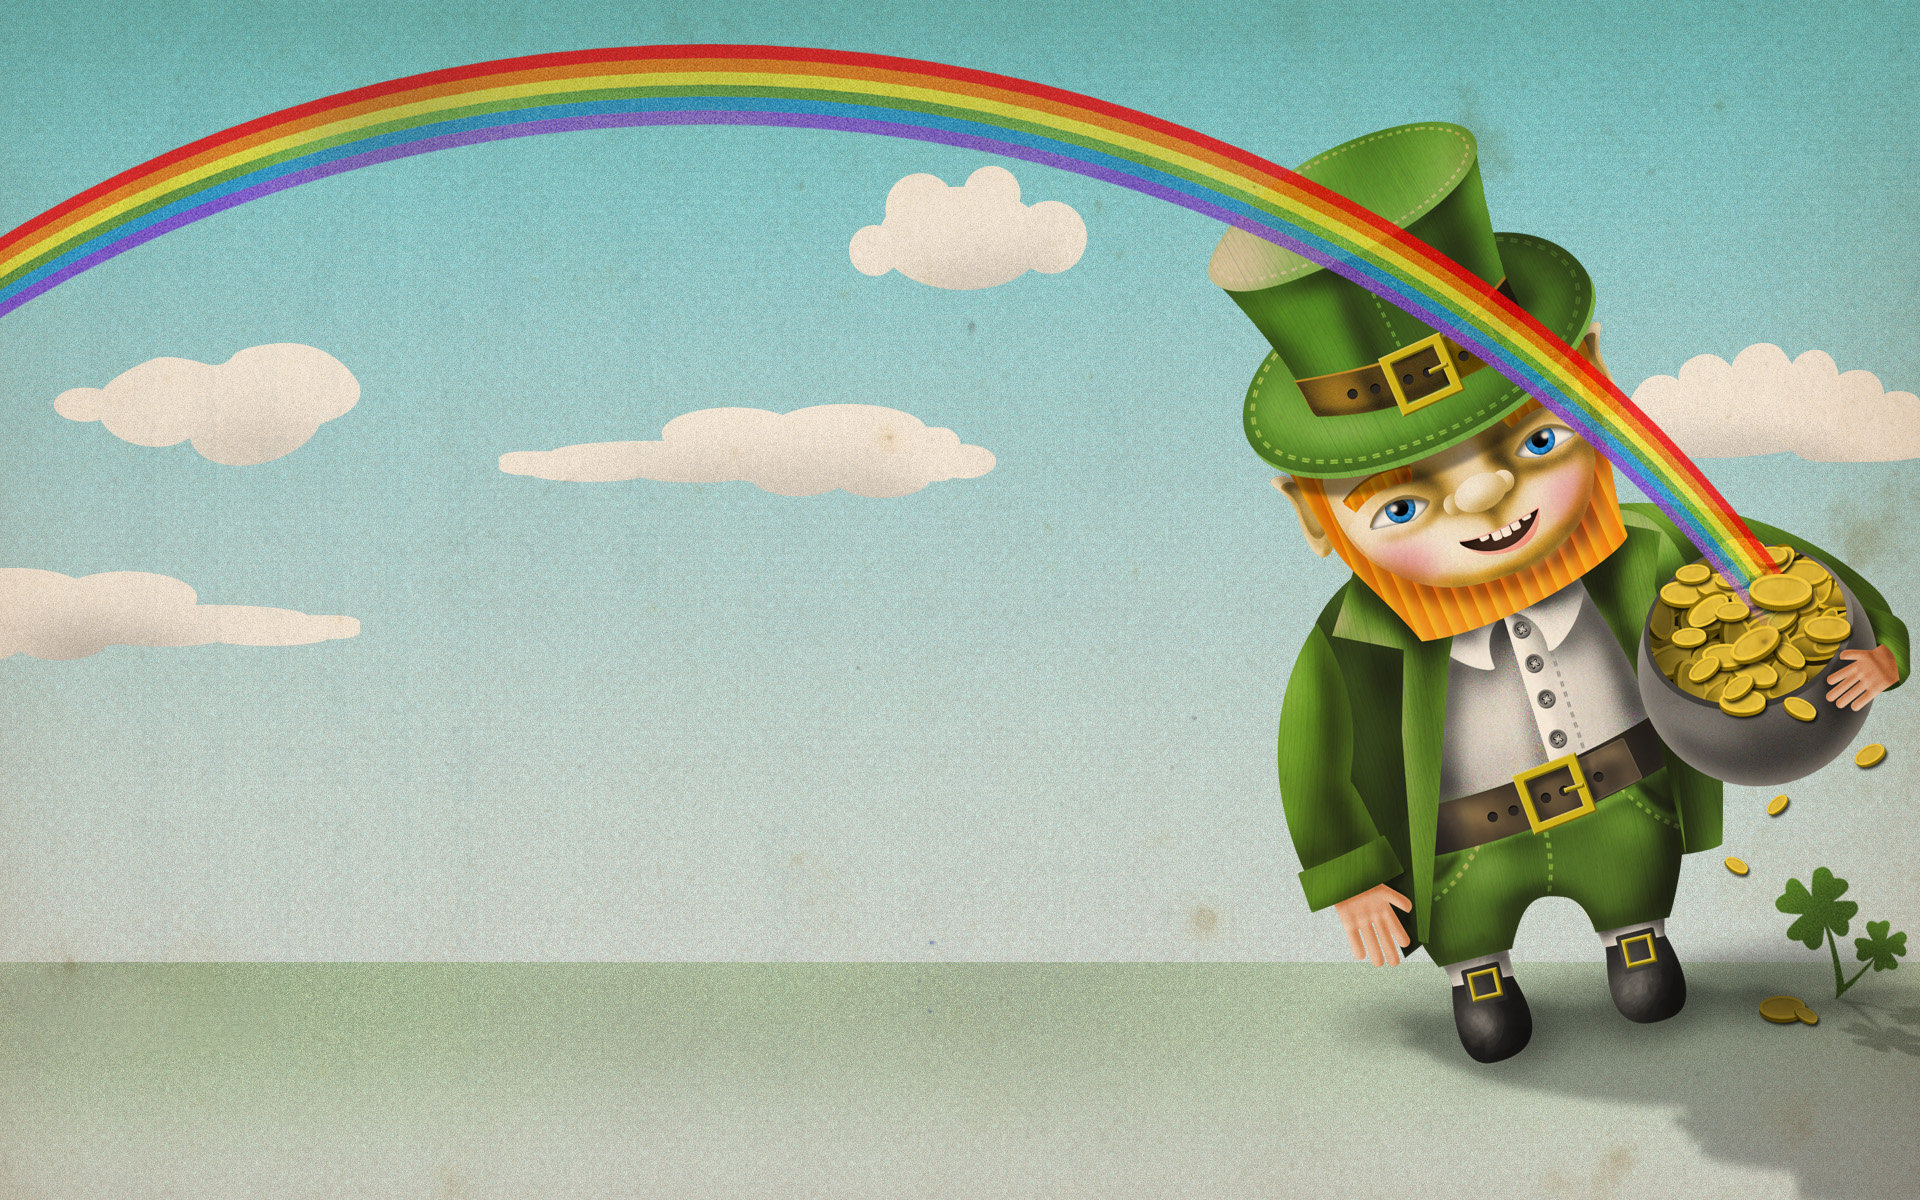 Download Hd 1920x1200 Leprechaun Computer Background ID89776 For Free